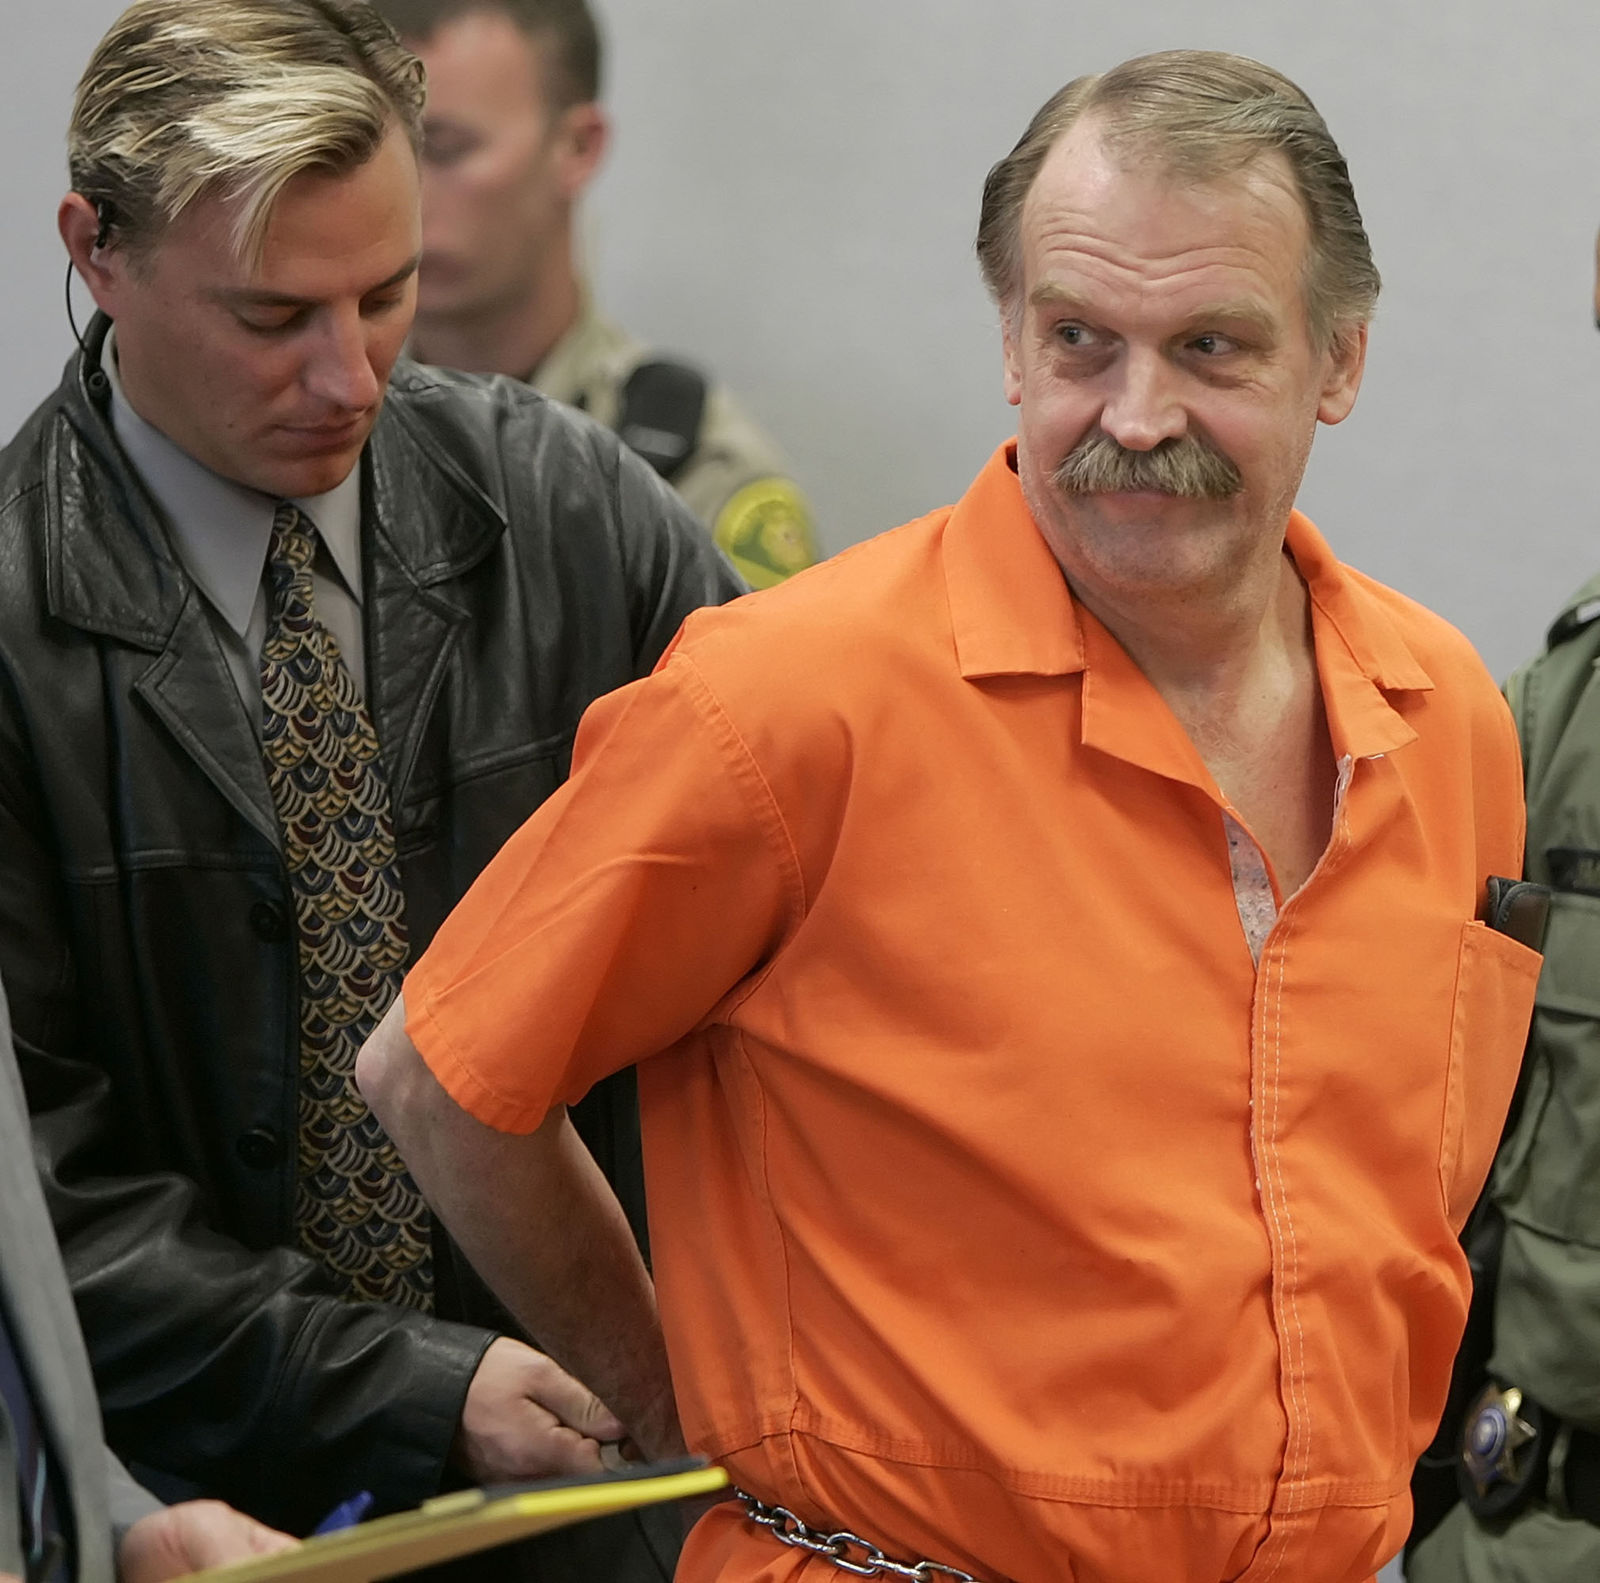 "FILE - In this Oct. 6, 2005 file photo, convicted murderer and death row inmate Ron Lafferty is handcuffed after his court hearing in a courtroom in Provo, Utah. Utah prison officials said Monday, Nov. 11, 2019, that Lafferty, a death-row inmate whose double-murder case was featured in the book ""Under the Banner of Heaven"" and who was nearing an execution by firing squad, has died of natural causes. (AP Photo/George Frey, File)"